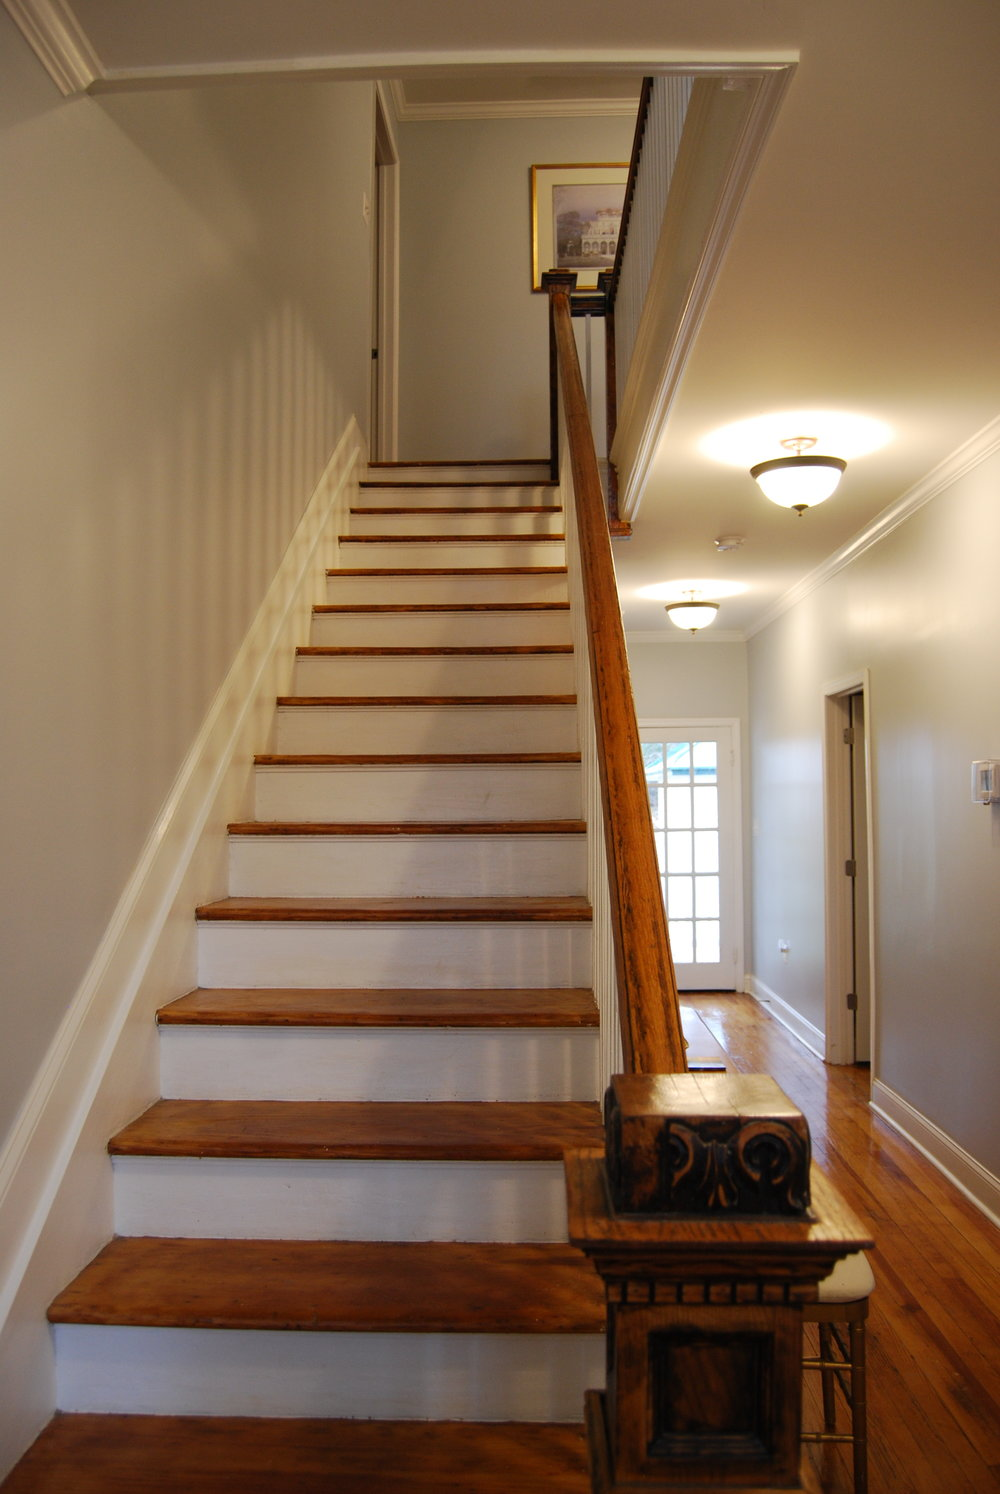 stairs and hallway to second floor.JPG